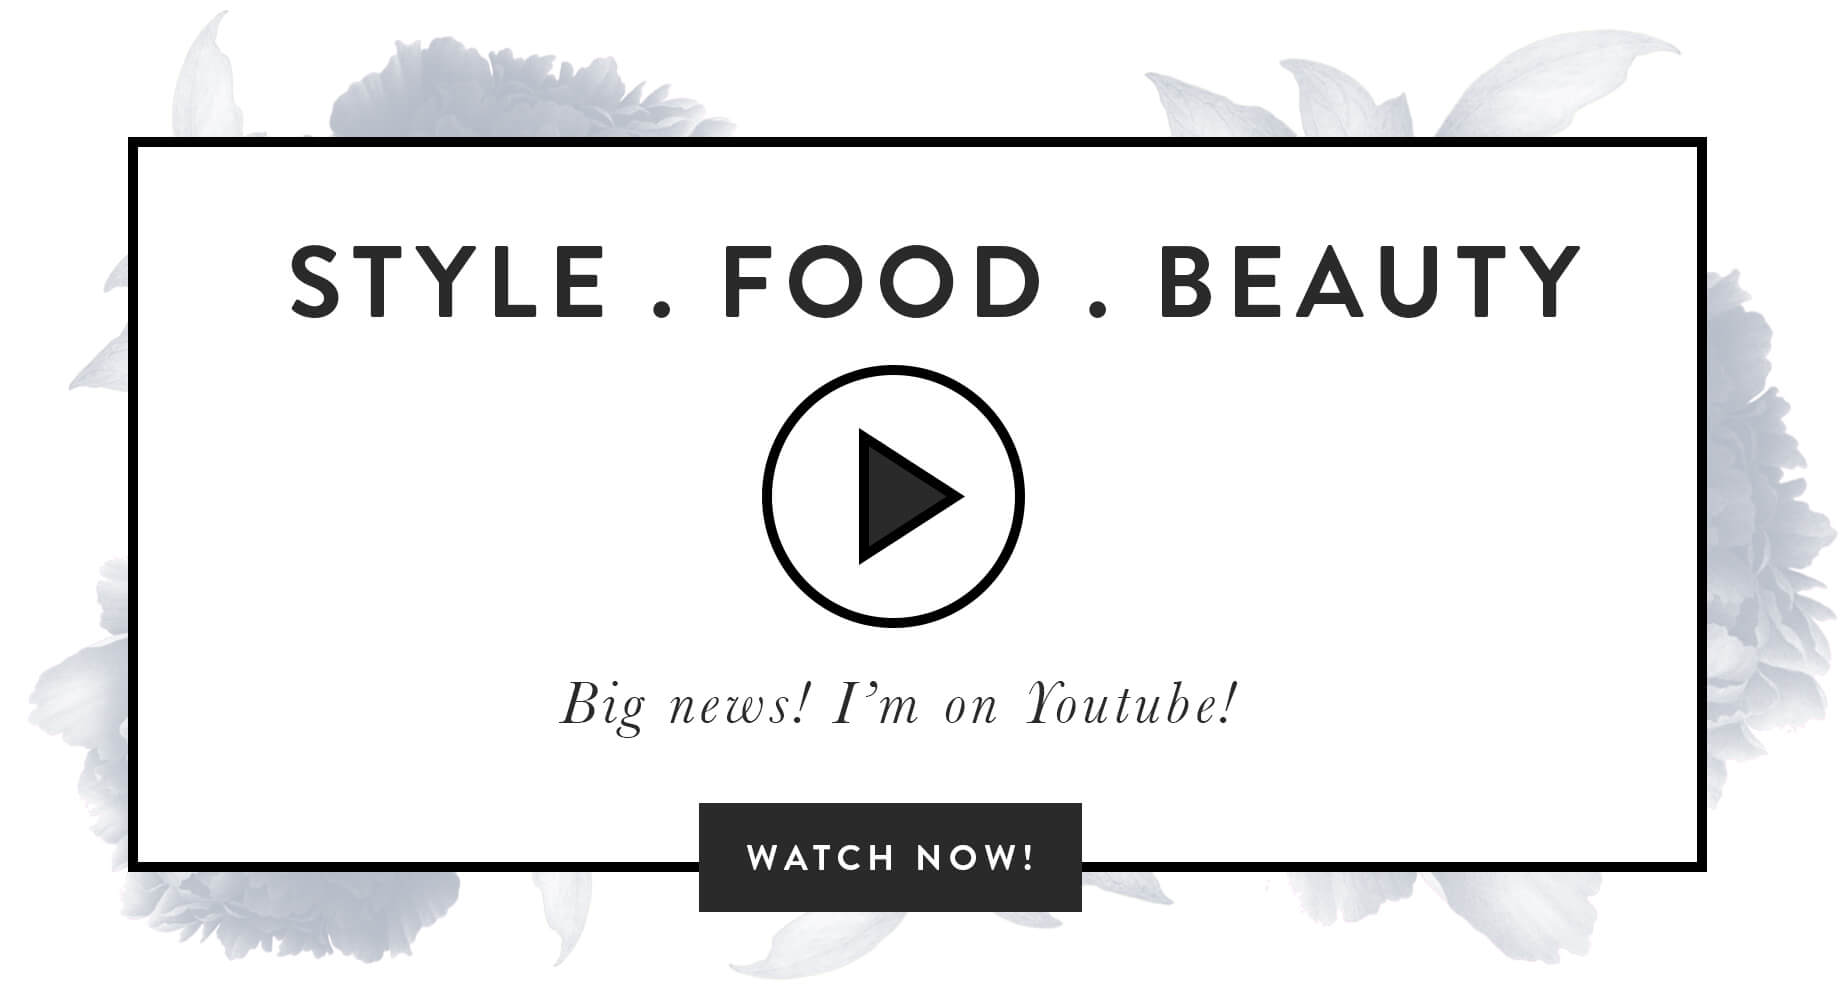 I'm on Youtube sharing style, beauty, food, and life advice! | M Loves M @marmar